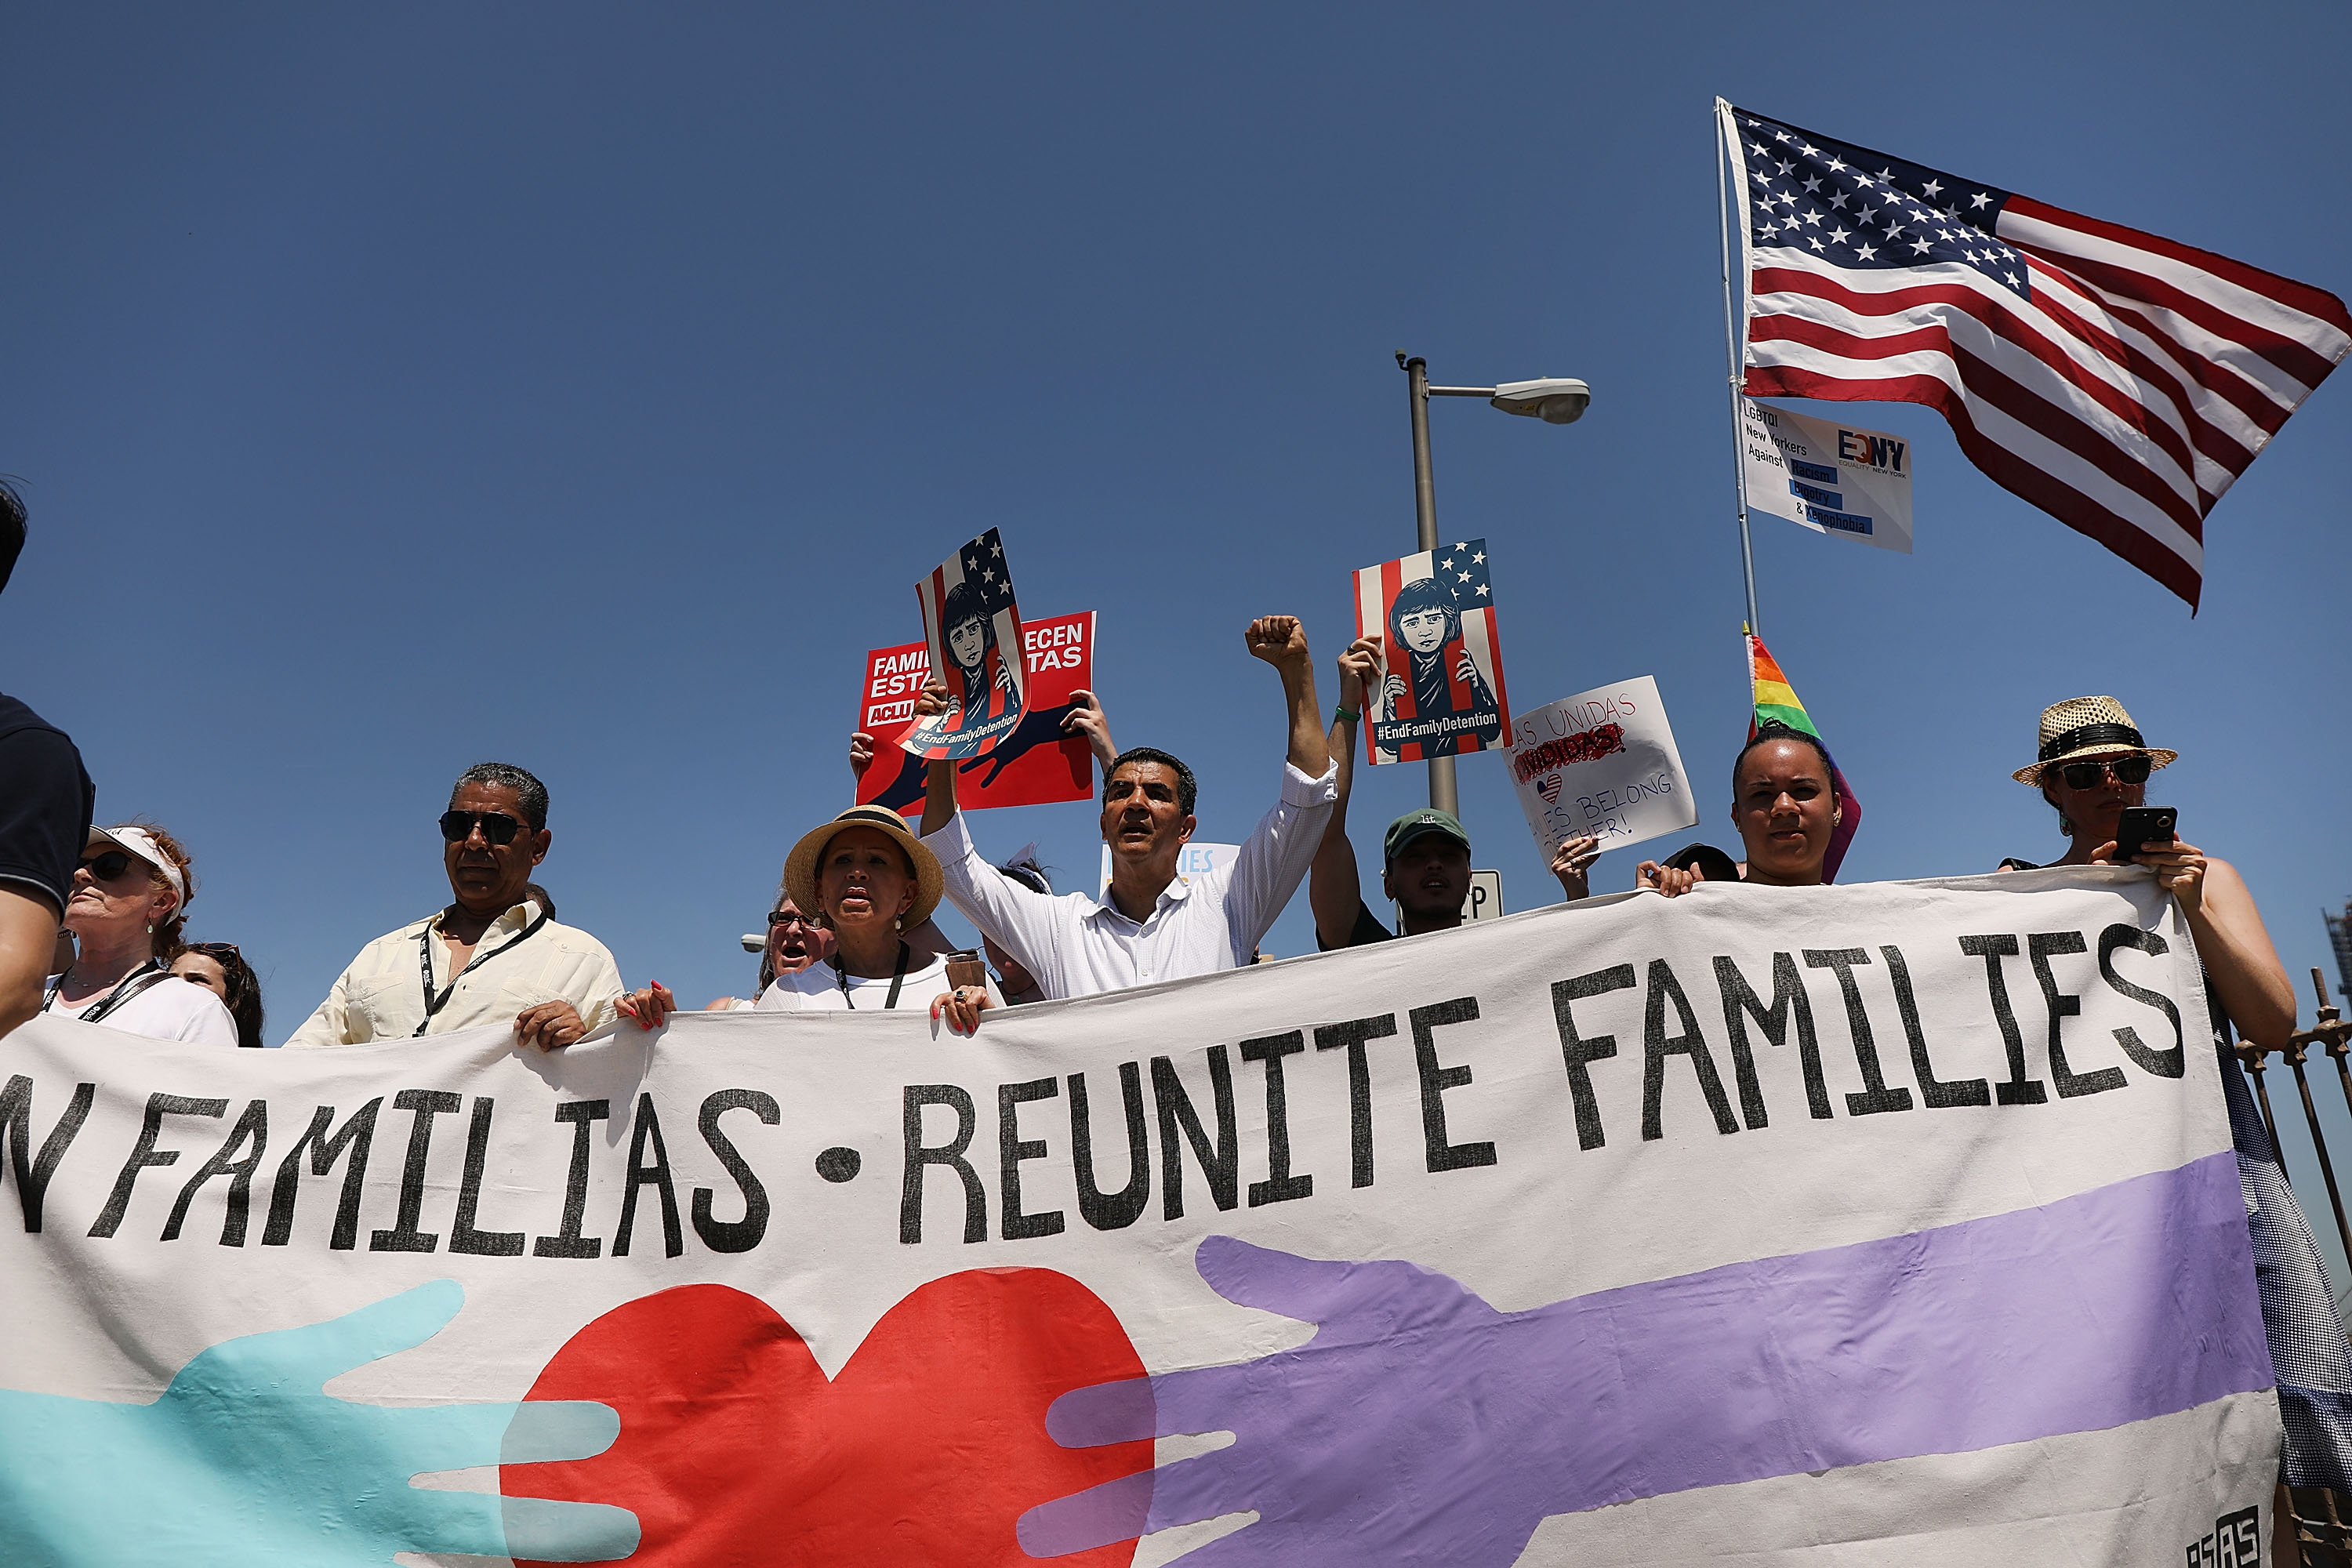 A new court ruling officially opens the door for Trump to separate some migrant families again